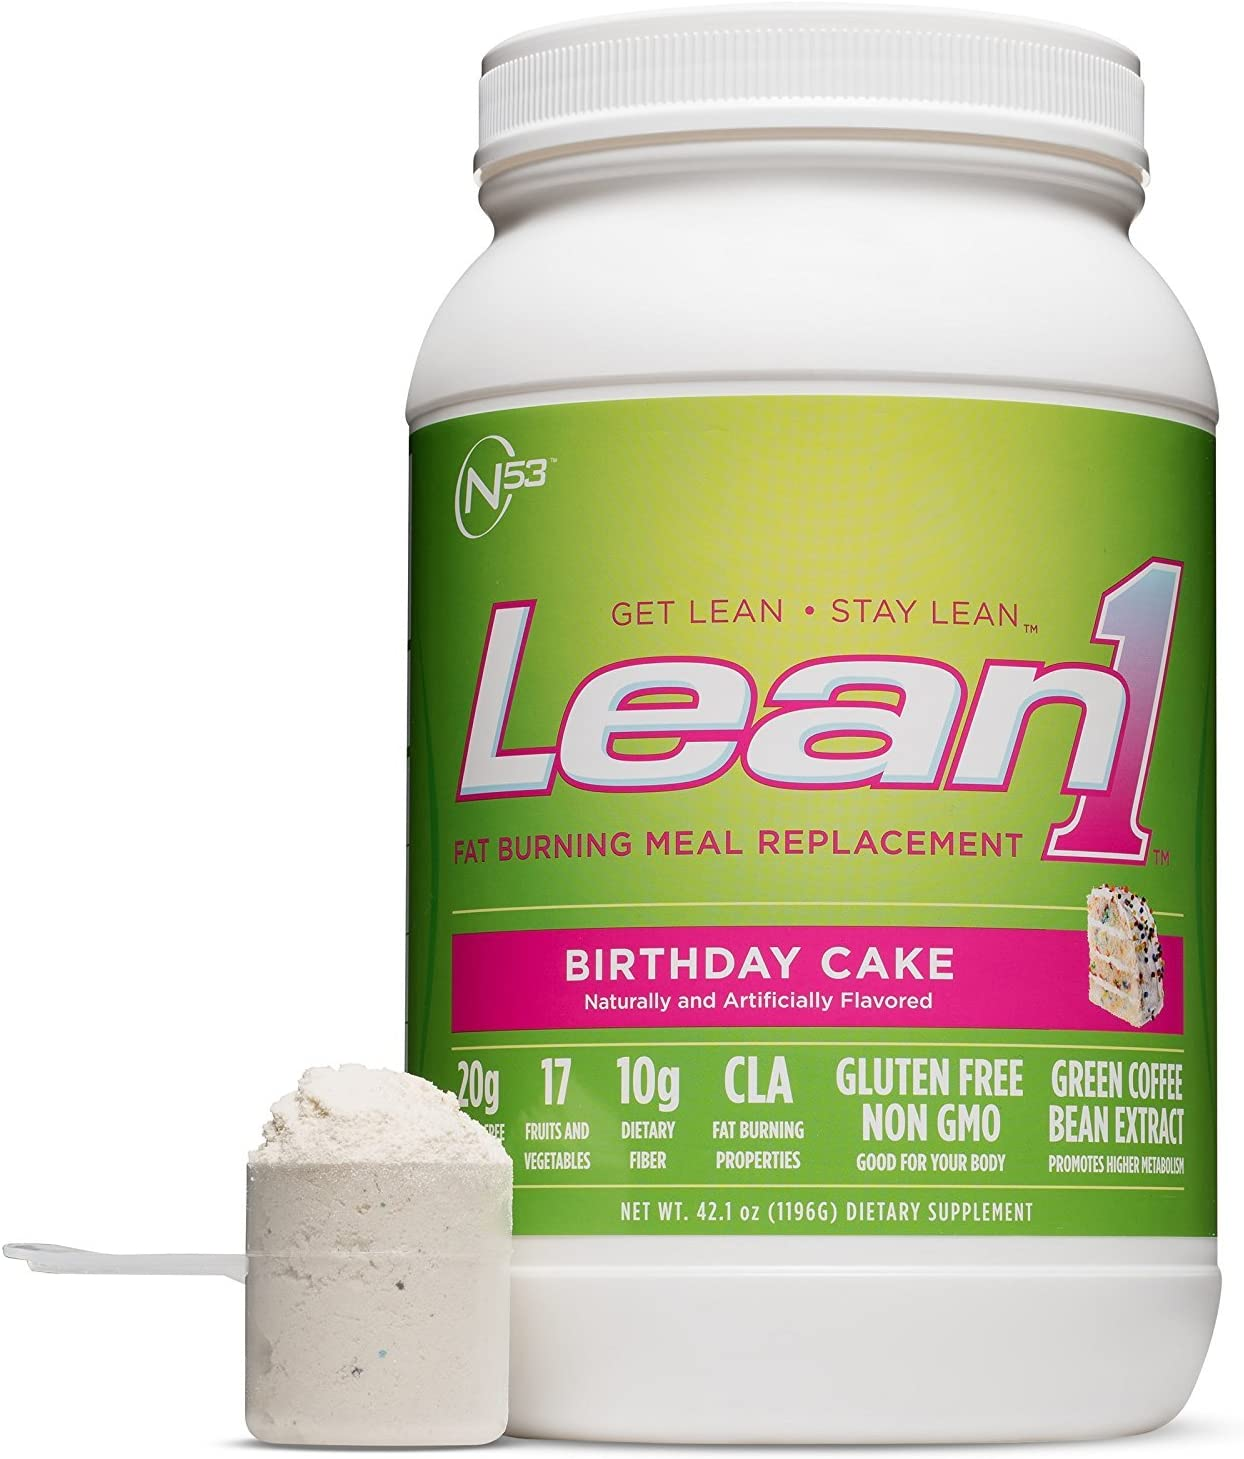 Lean 1 Birthday Cake Protein Powder Meal Replacement Shakes By Nutrition 53, Lactose Gluten Free with Green Coffee Bean Extract, 23 Serving Tub – 42 oz